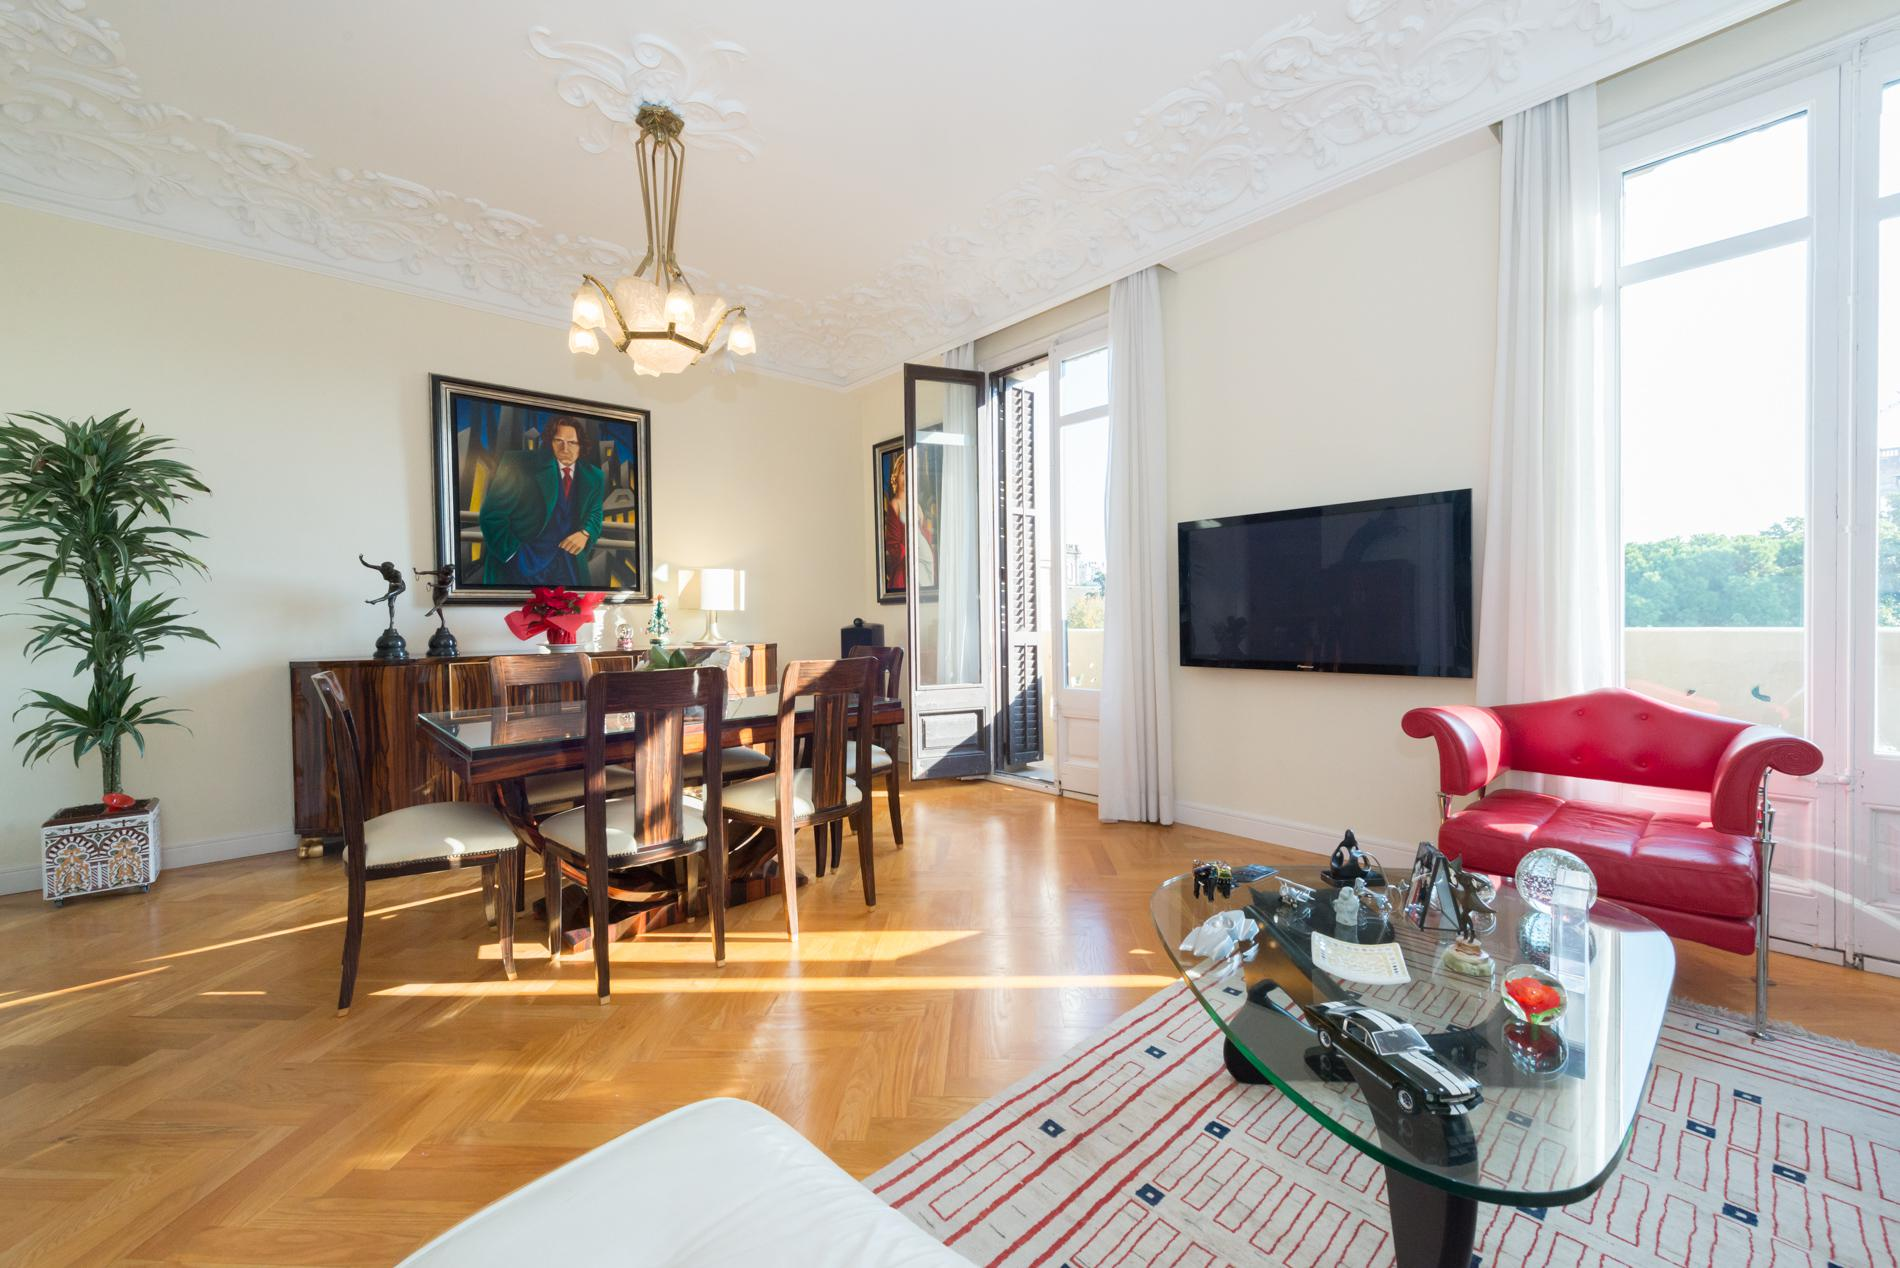 174066 Flat for sale in Eixample, Antiga Esquerre Eixample 2